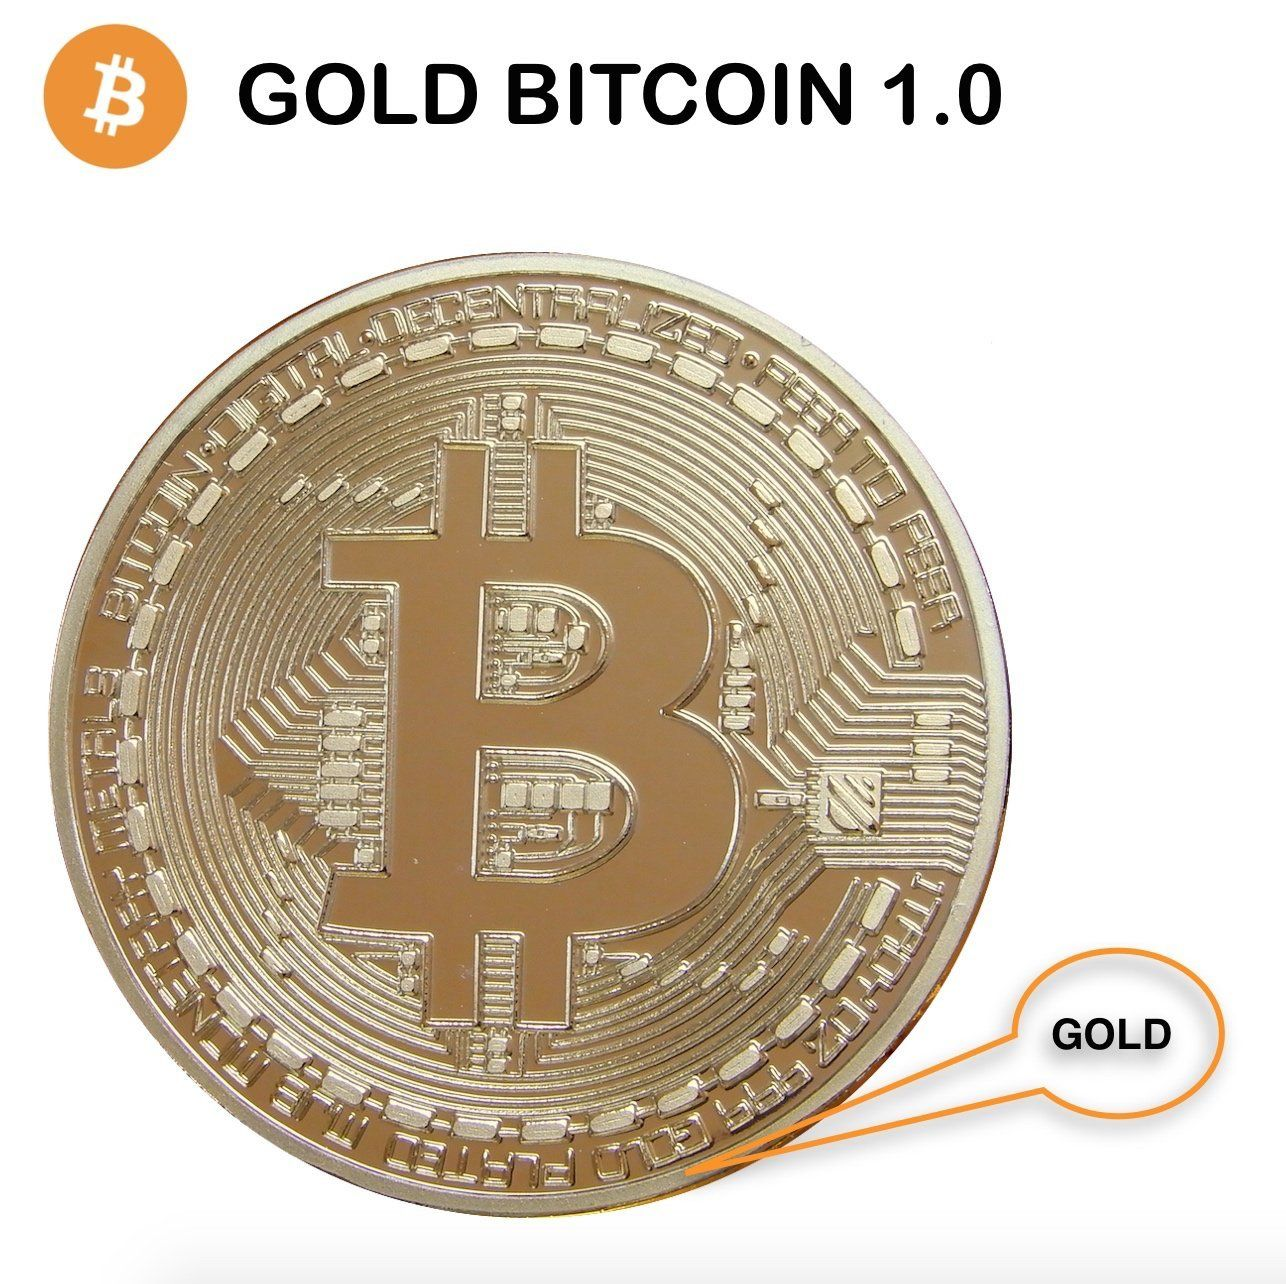 Gold Bitcoin Toys & Games (With images